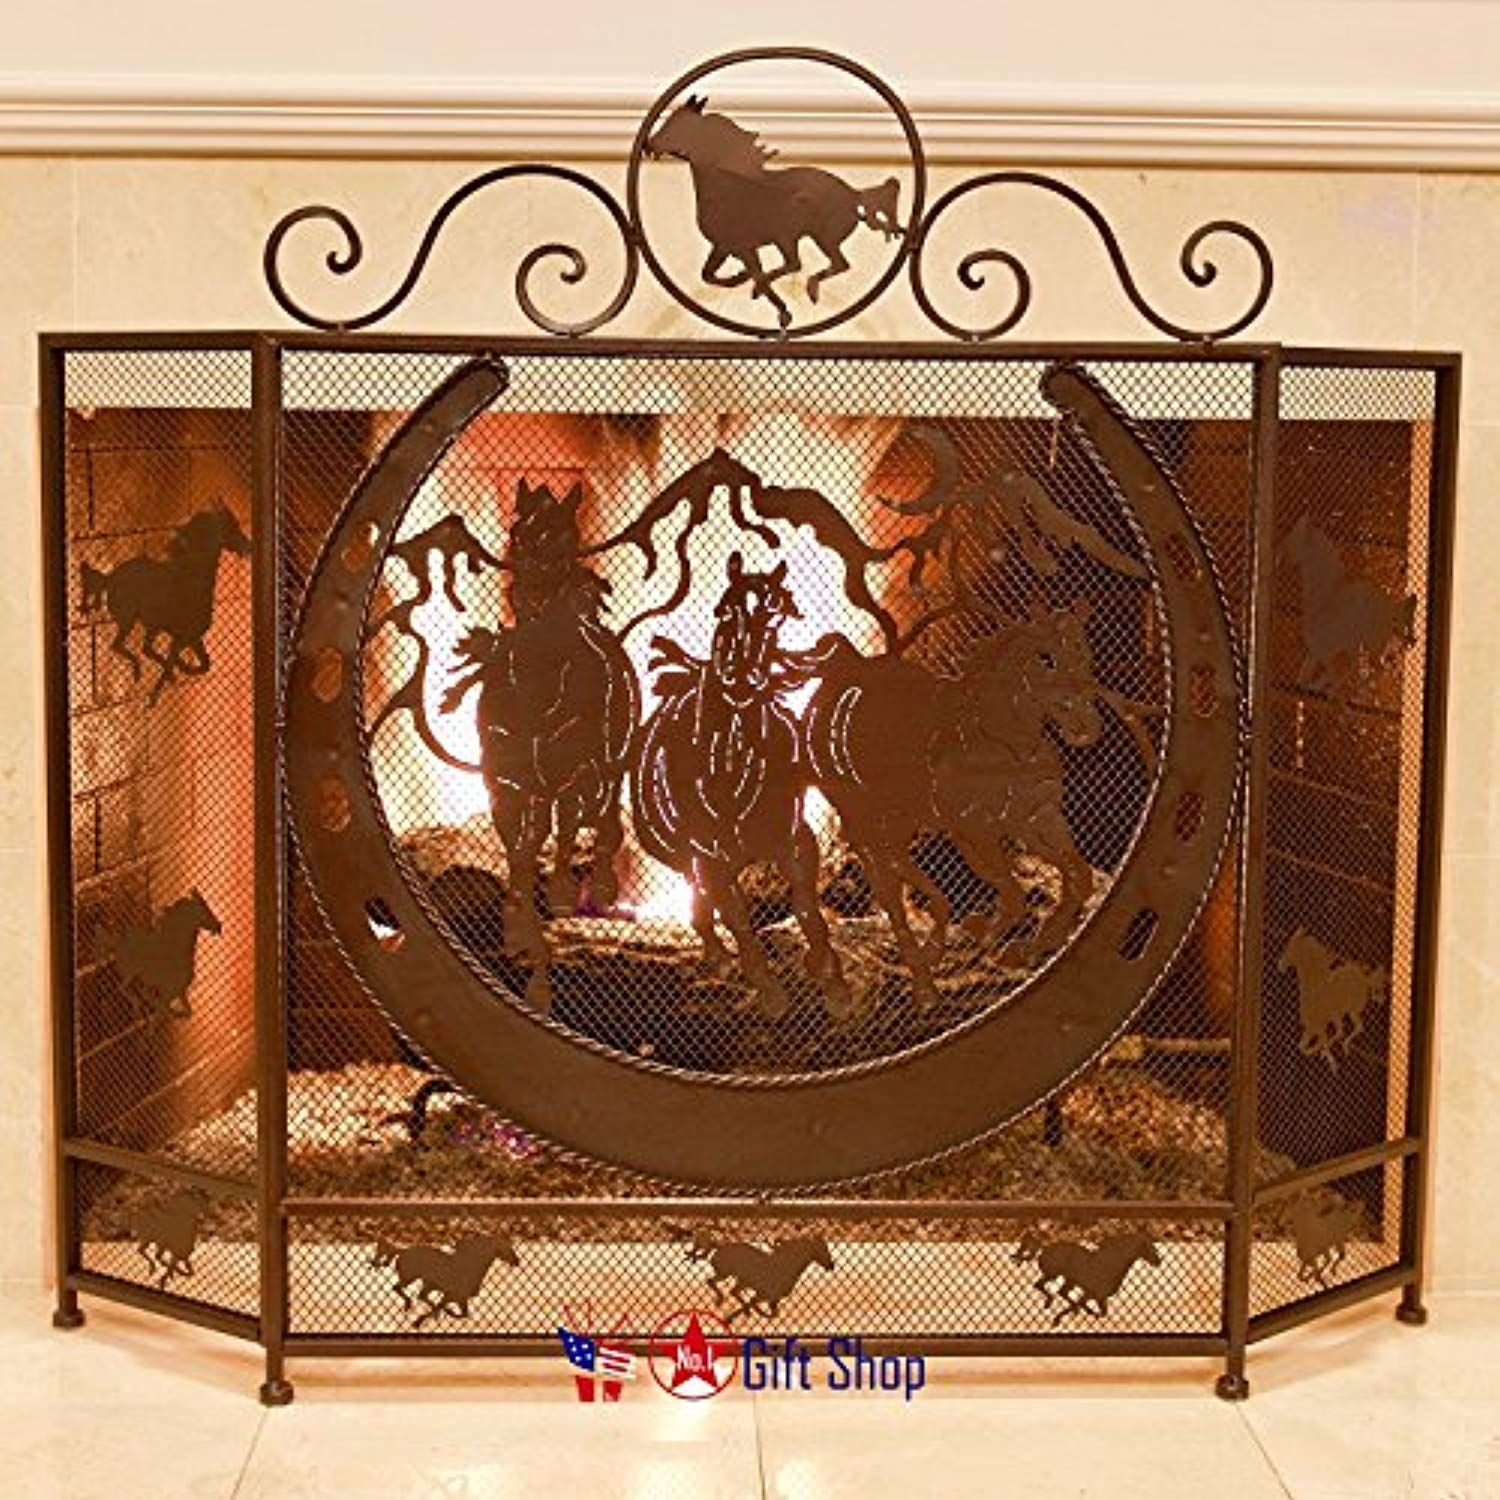 Bestgiftever Metal Running Horse Fireplace Screen Rustic Style